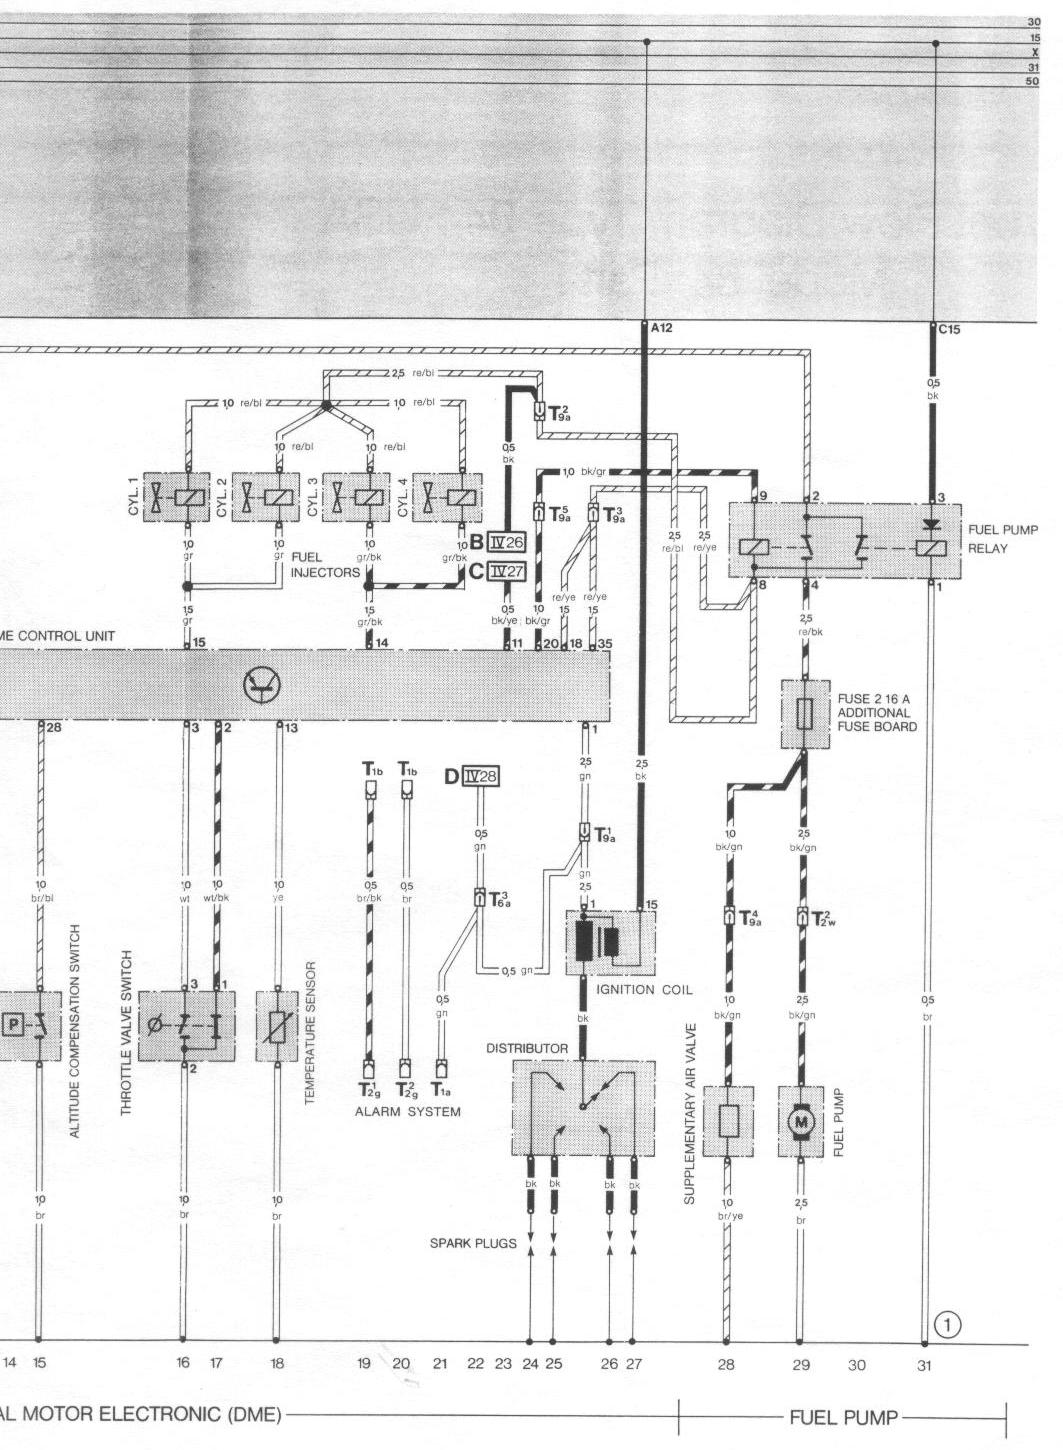 944_84_1_2 pelican parts porsche 924 944 electrical diagrams 1983 porsche 944 fuse box diagram at gsmx.co